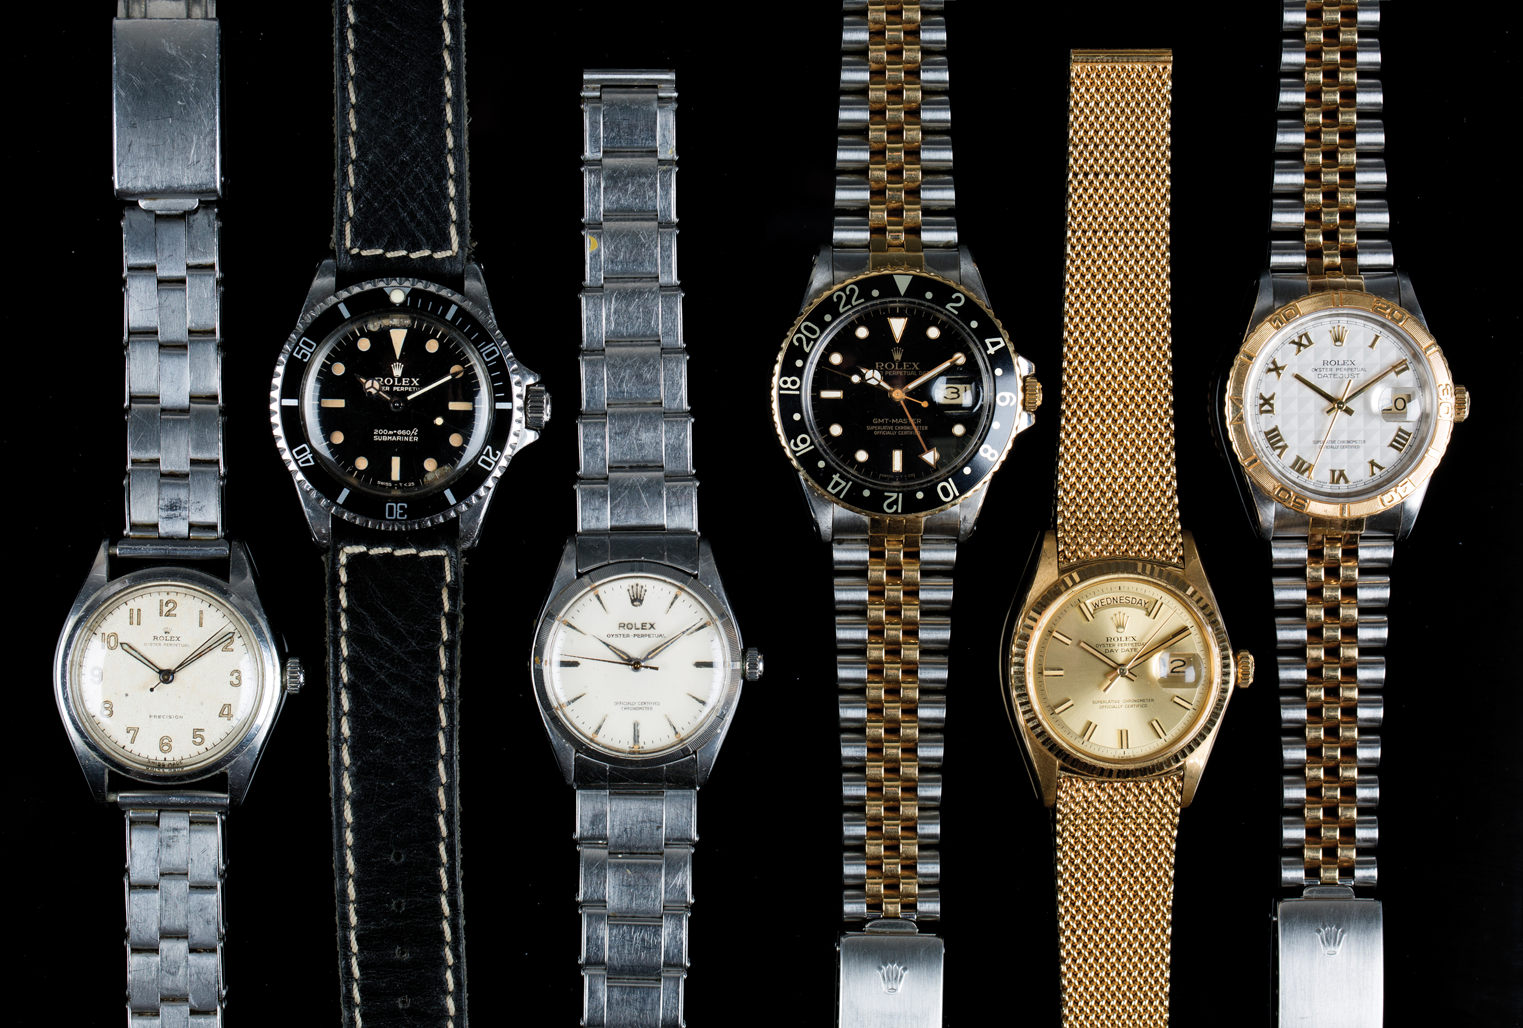 Rolex Watches at Toovey's